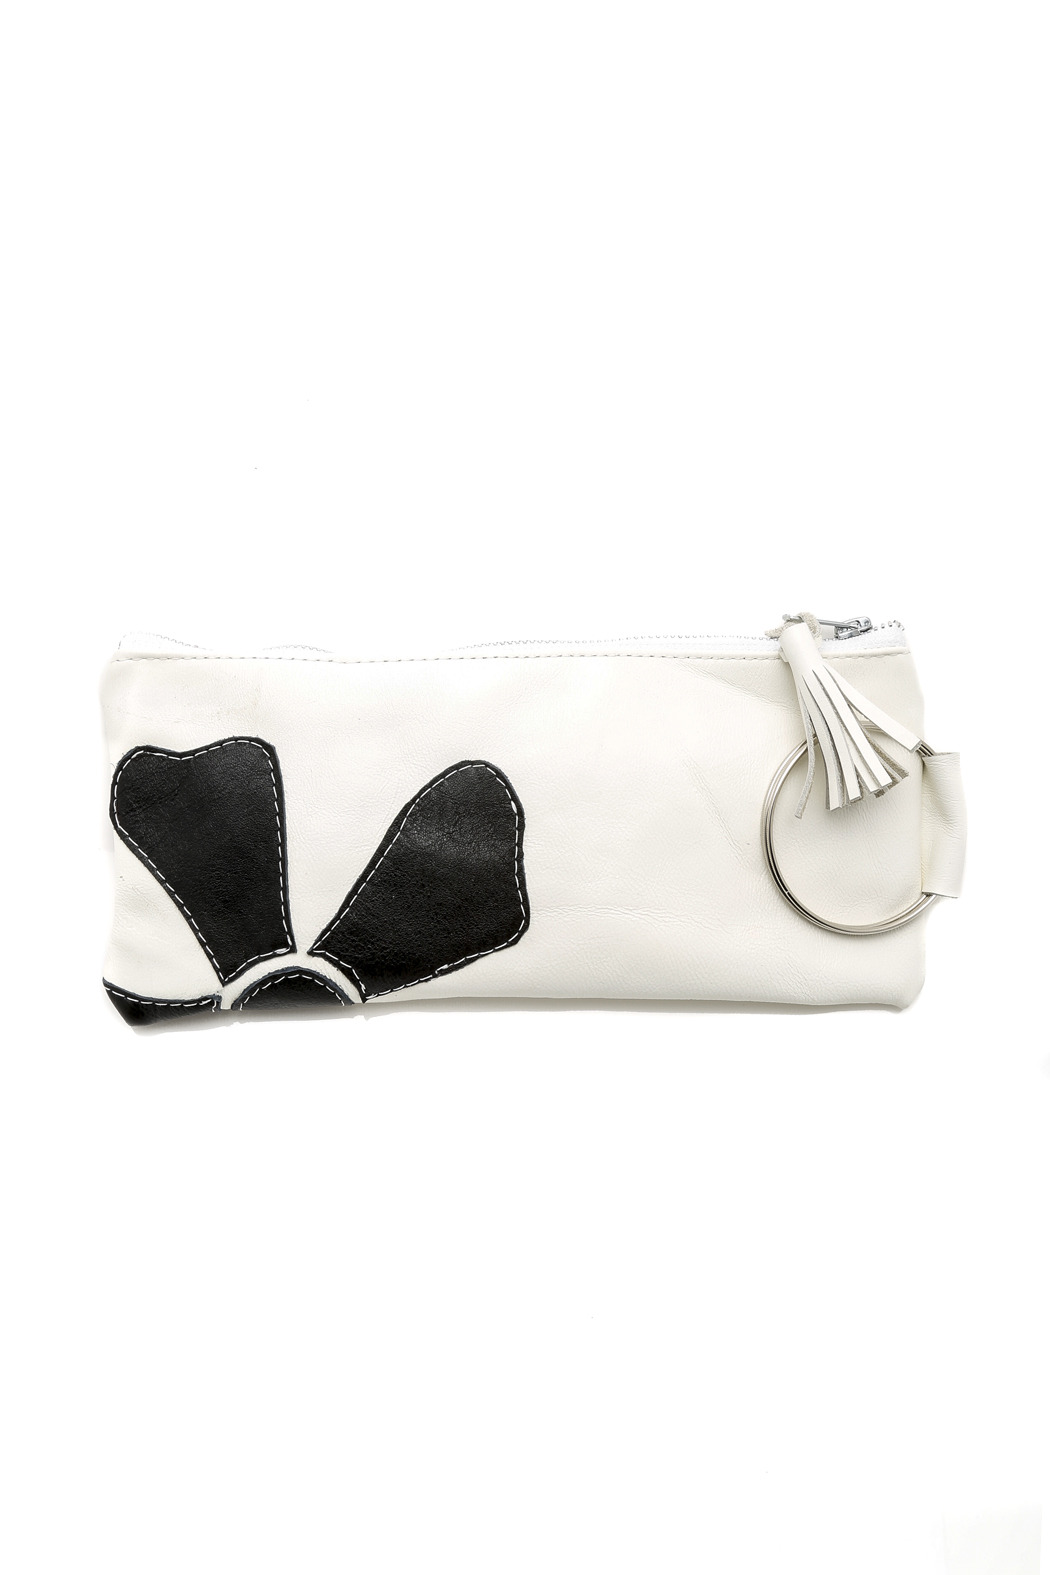 Vickie Wilson Leather Flower Clutch - Front Cropped Image